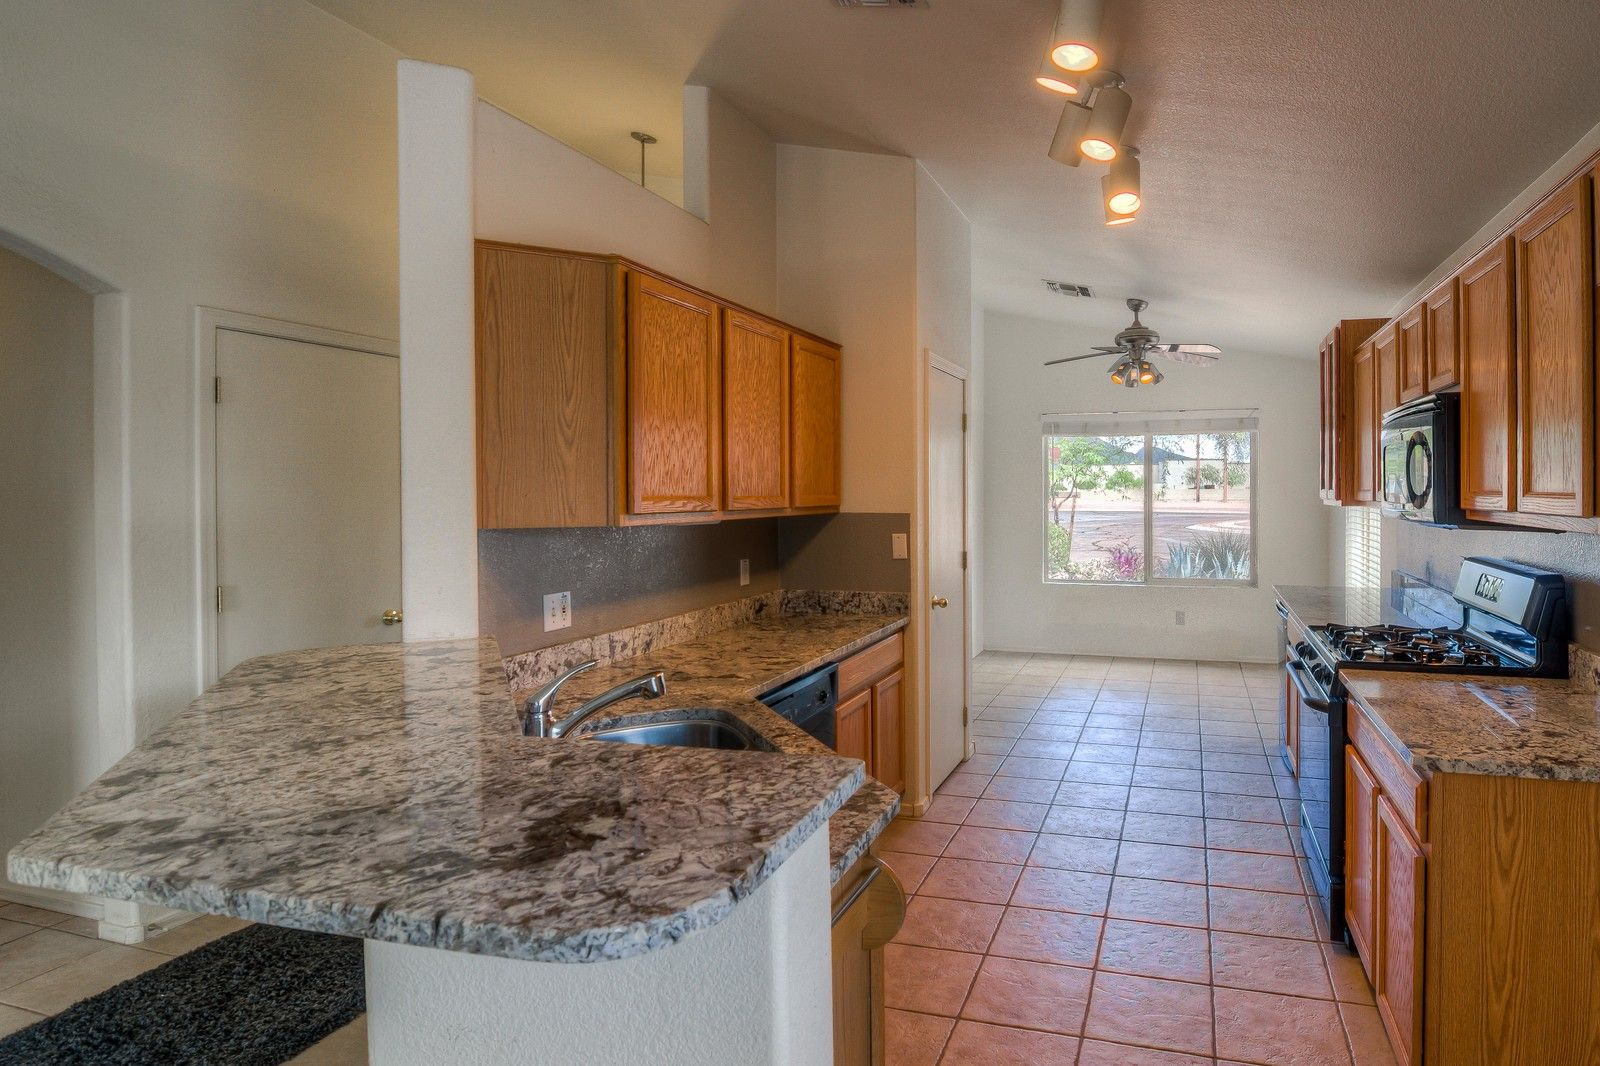 To learn more about this home for sale at mural hill dr